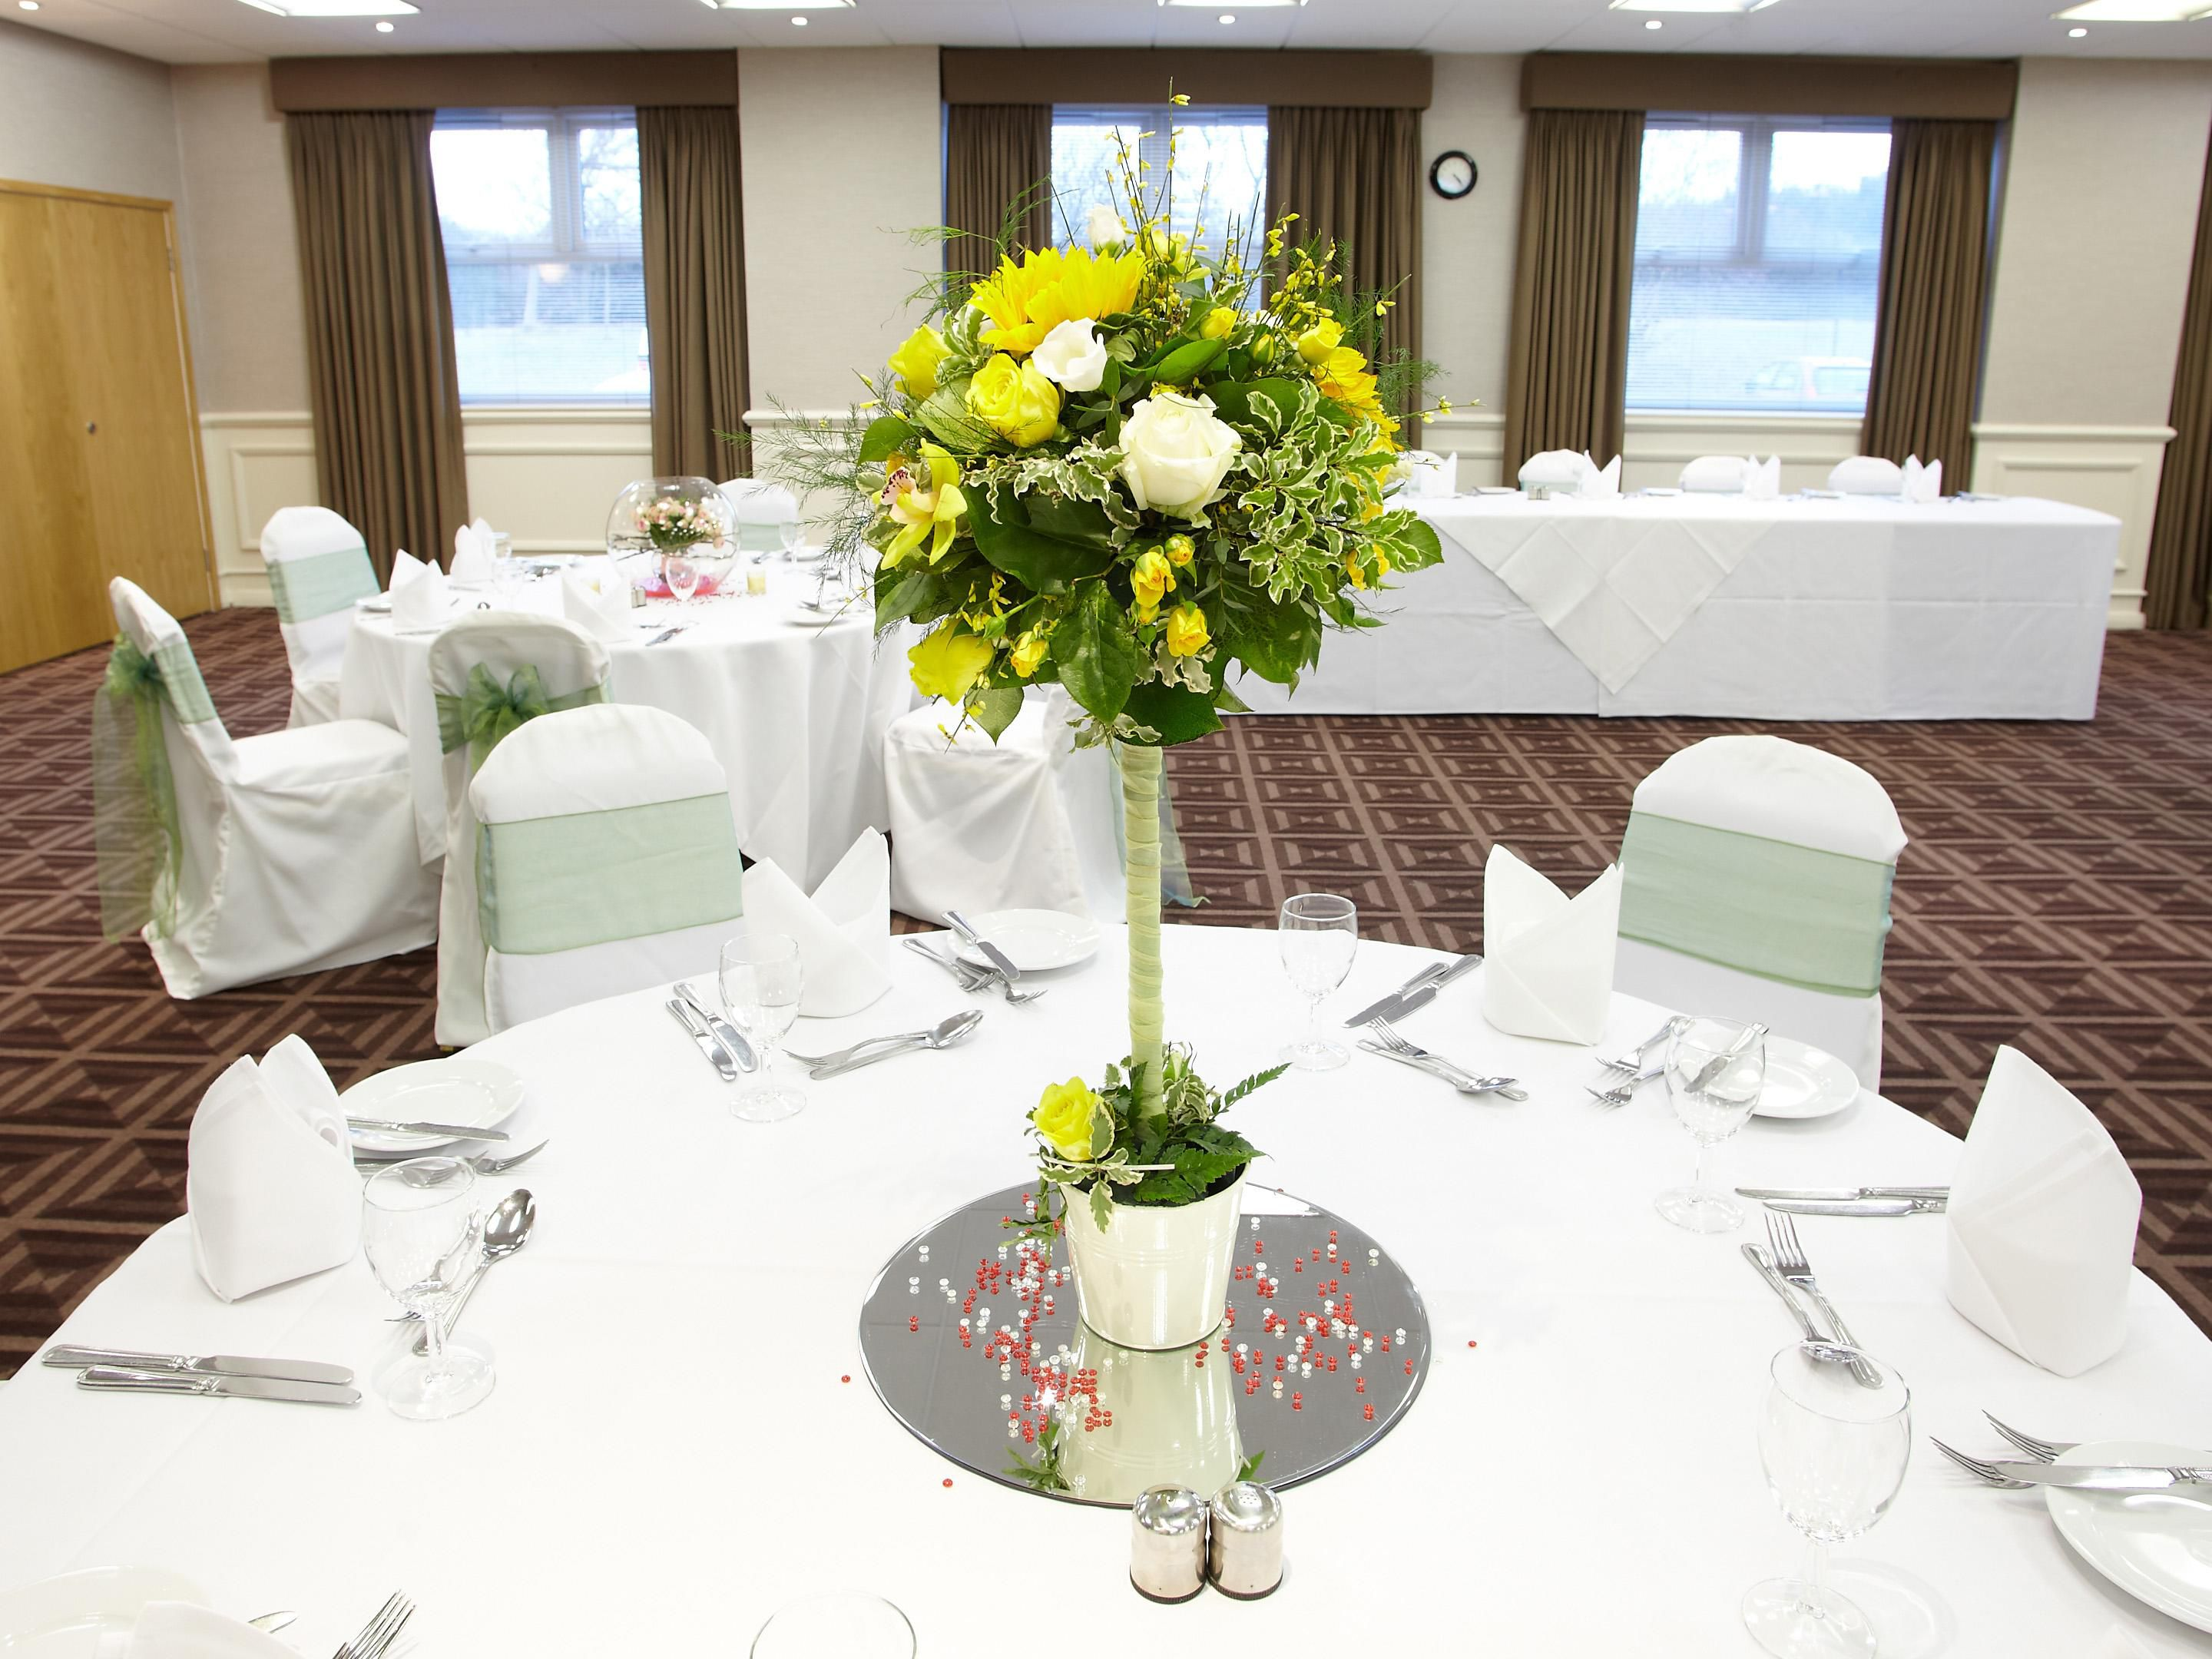 Ridley Suite set for a wedding reception